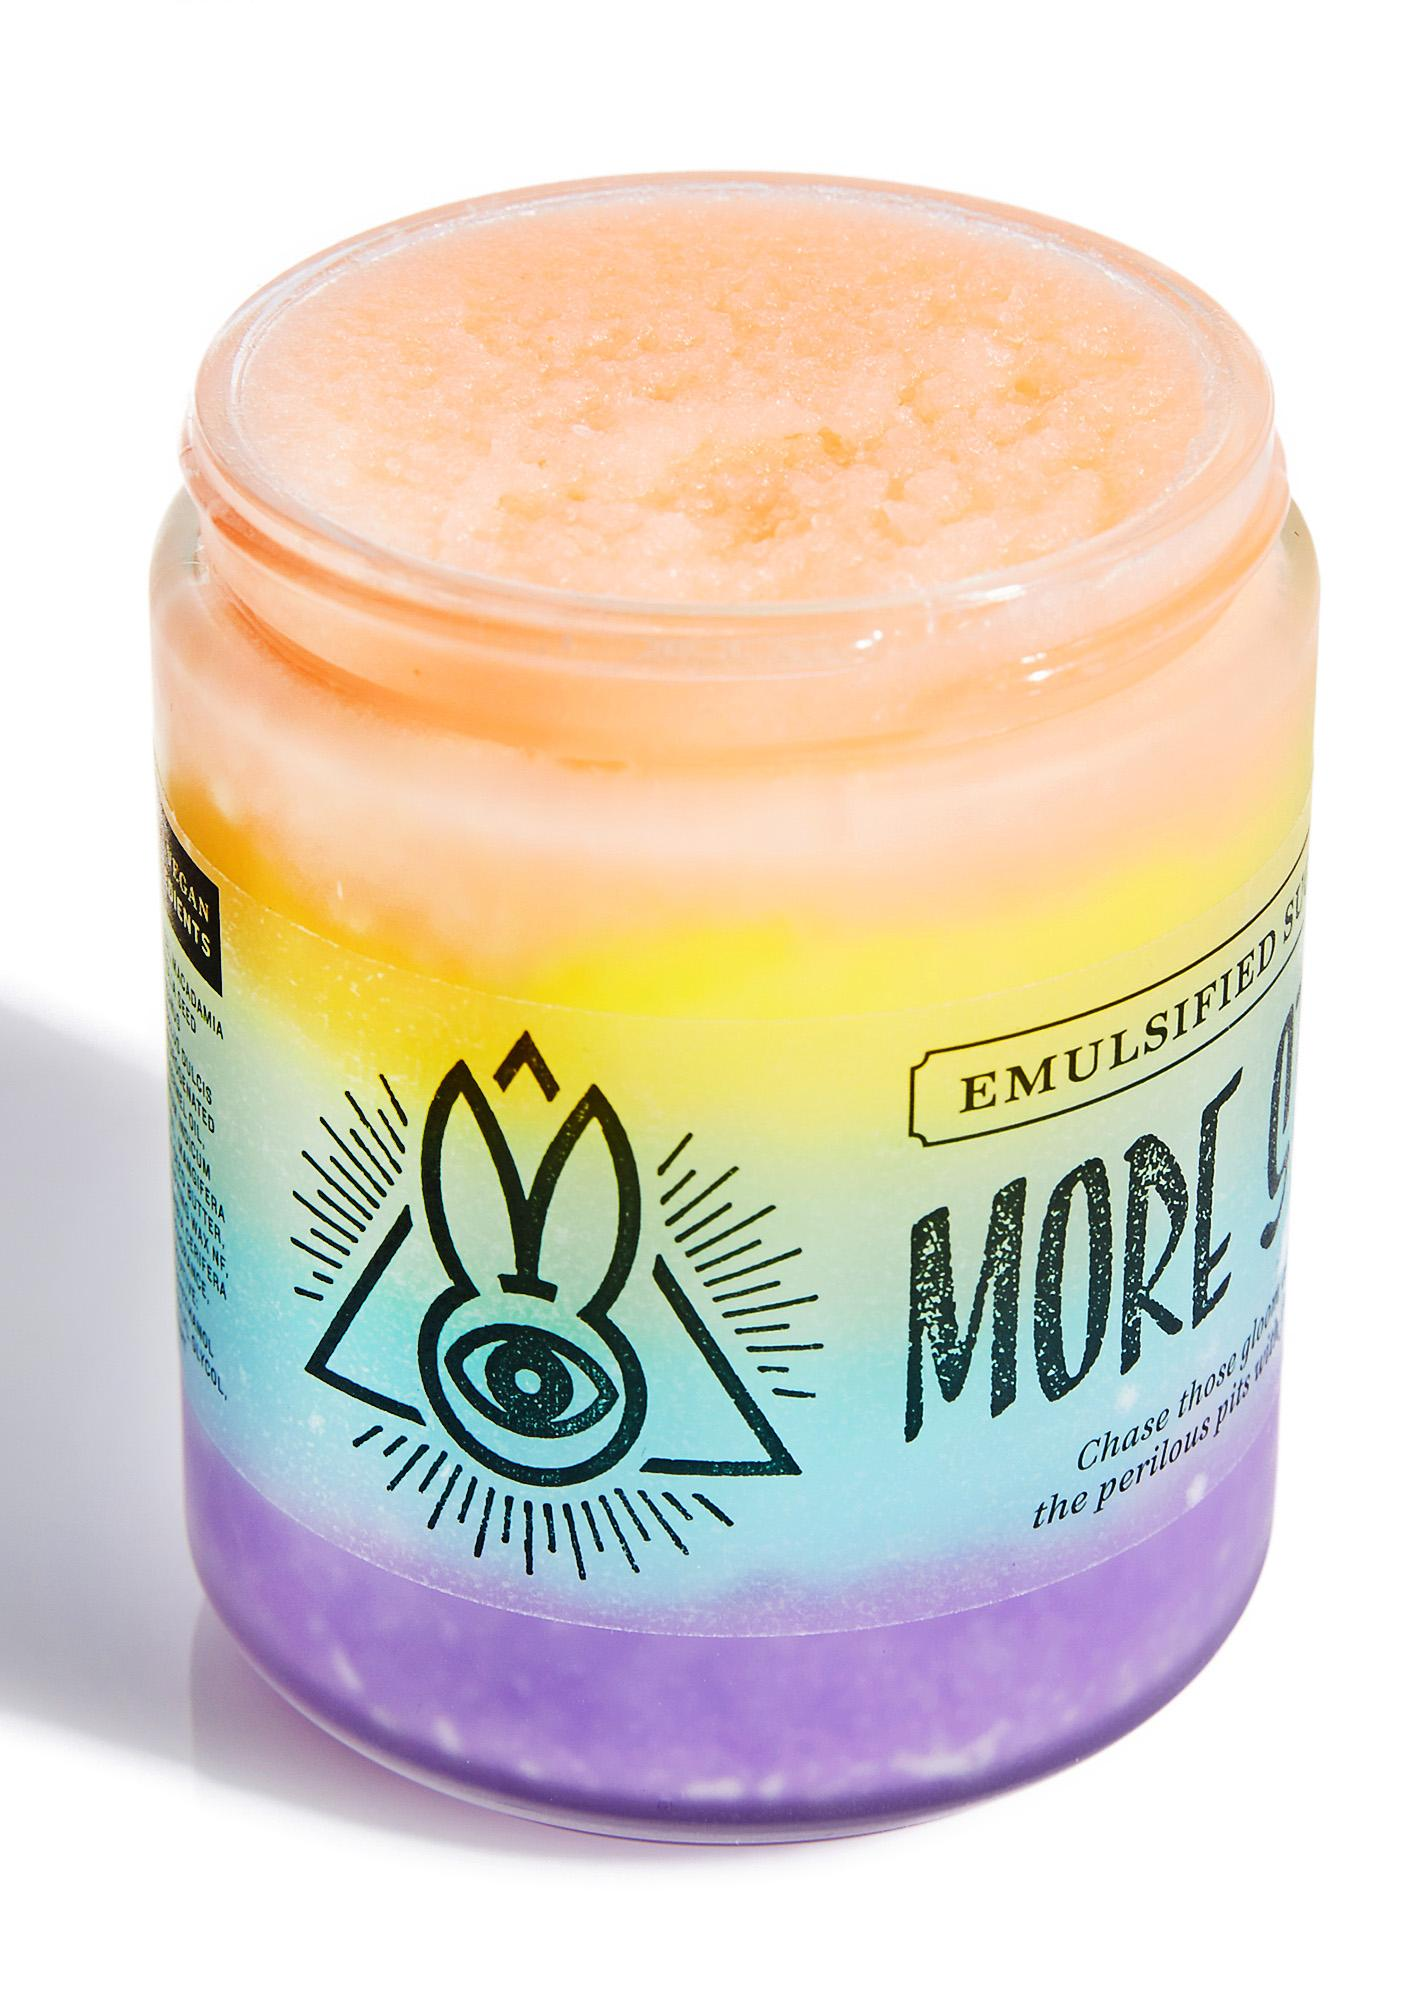 Arcane Bunny Society More Star Sprinkles Sugar Scrub